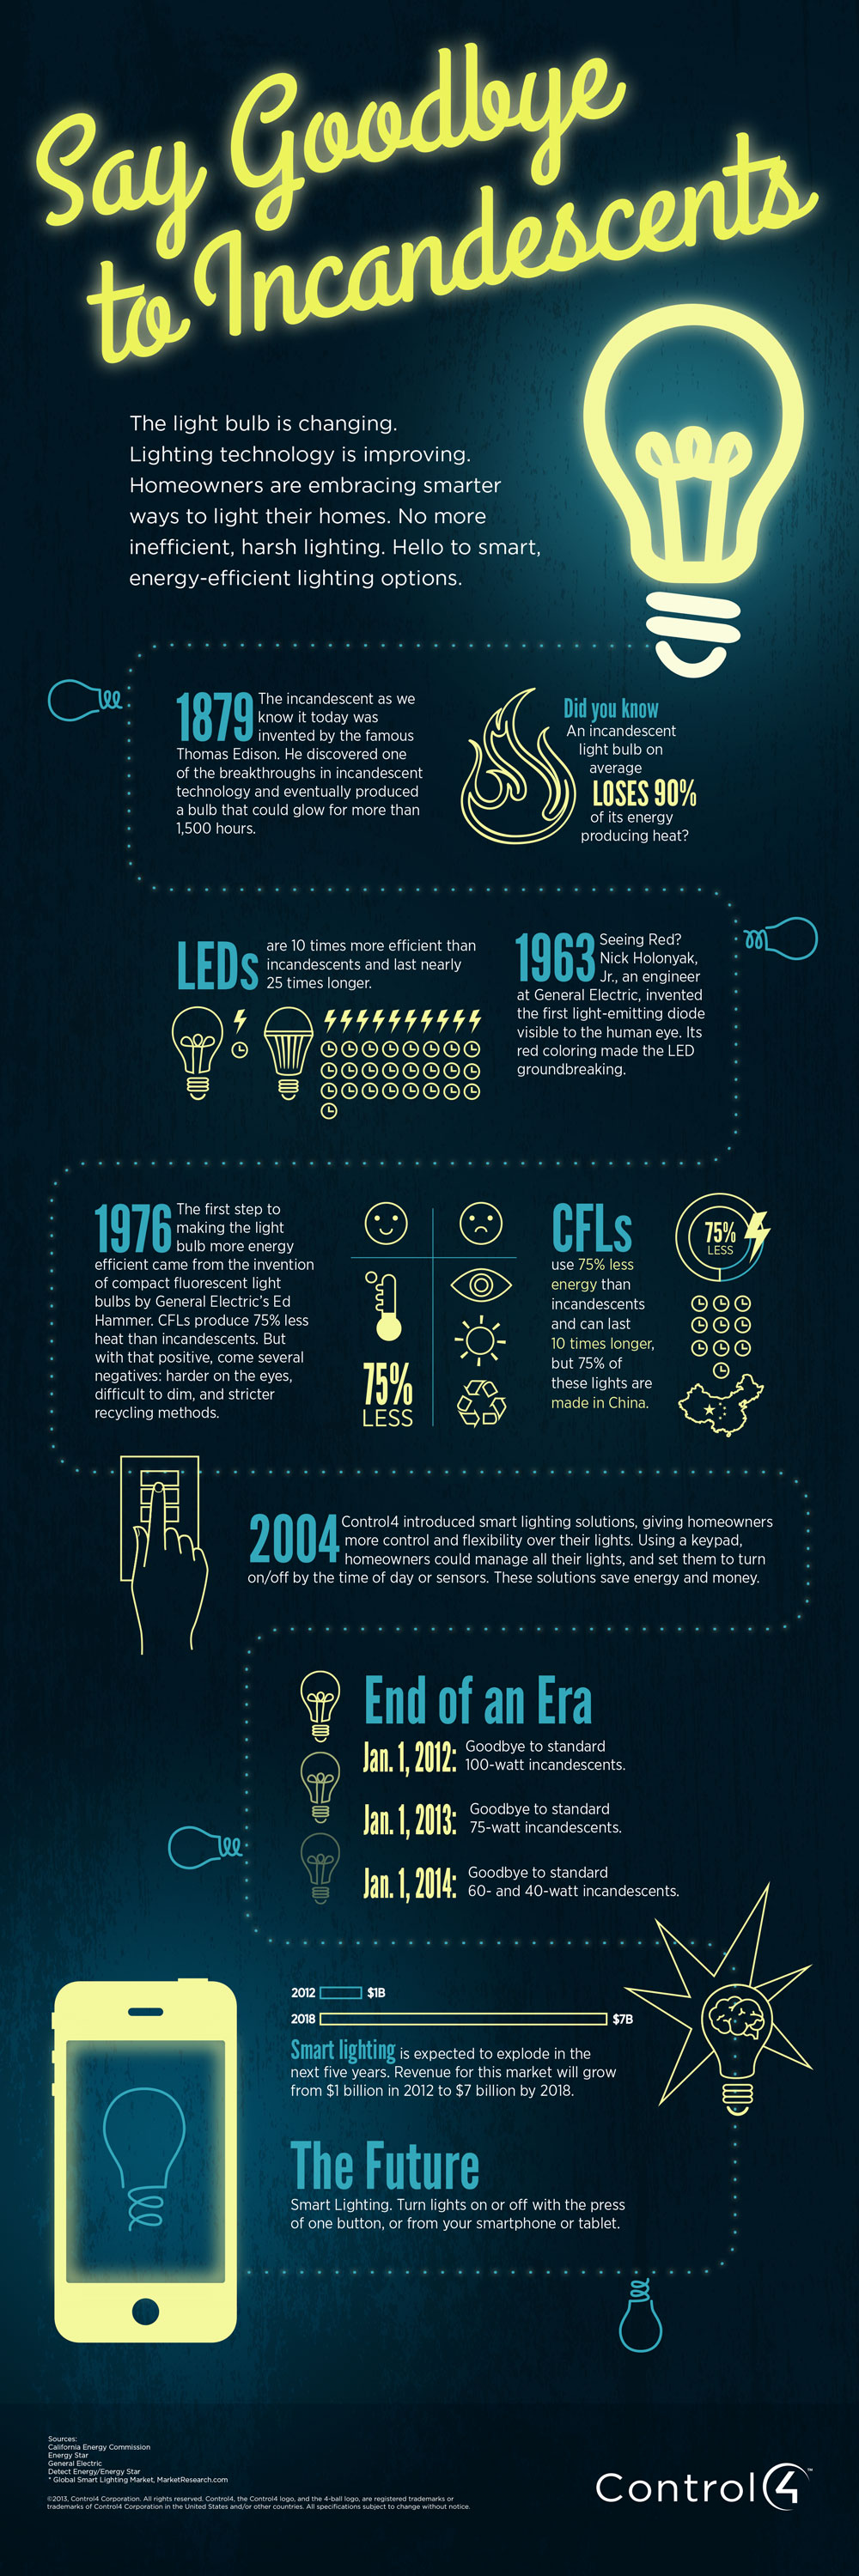 Control4 Incandescent Infographic